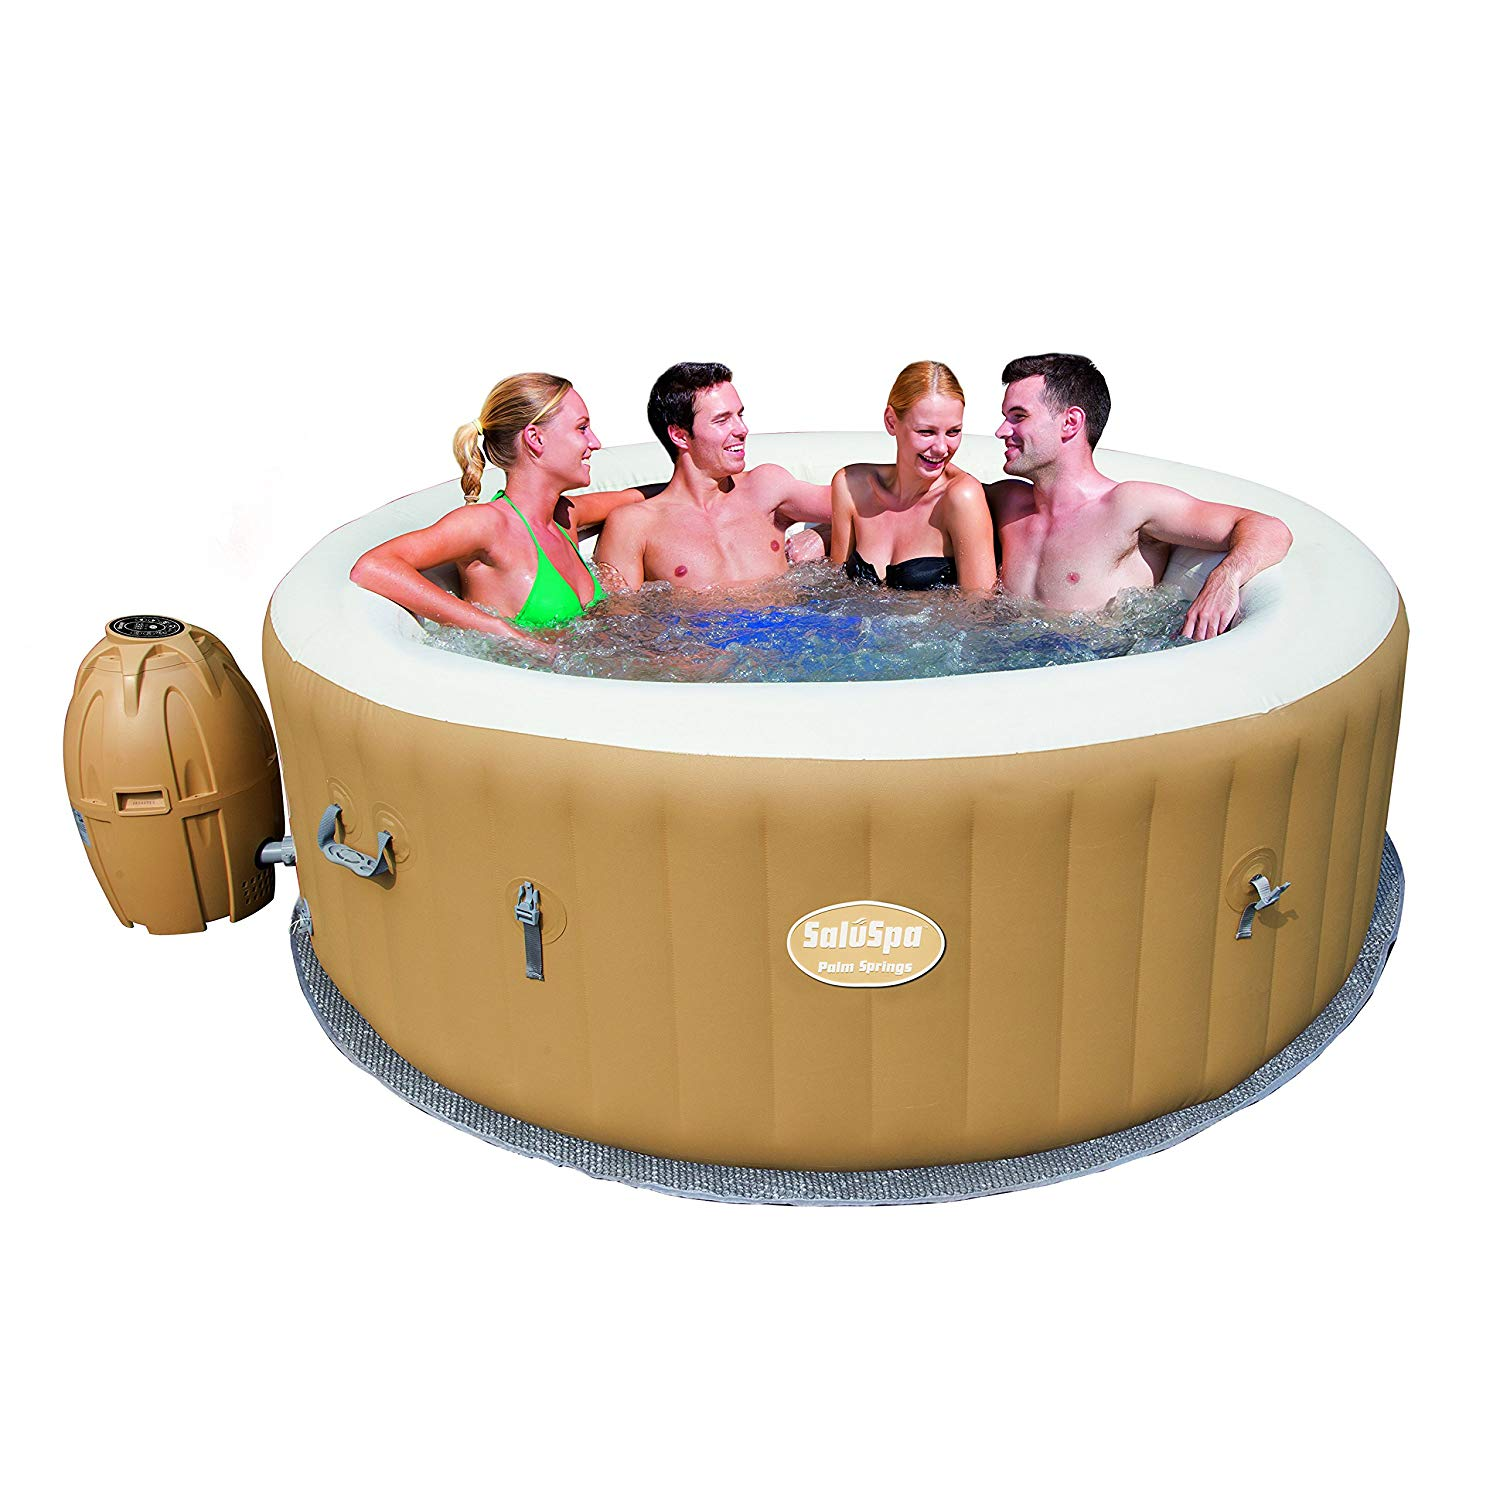 Bestawy Saluspa palm springs airjet inflatable 6-person hot tub